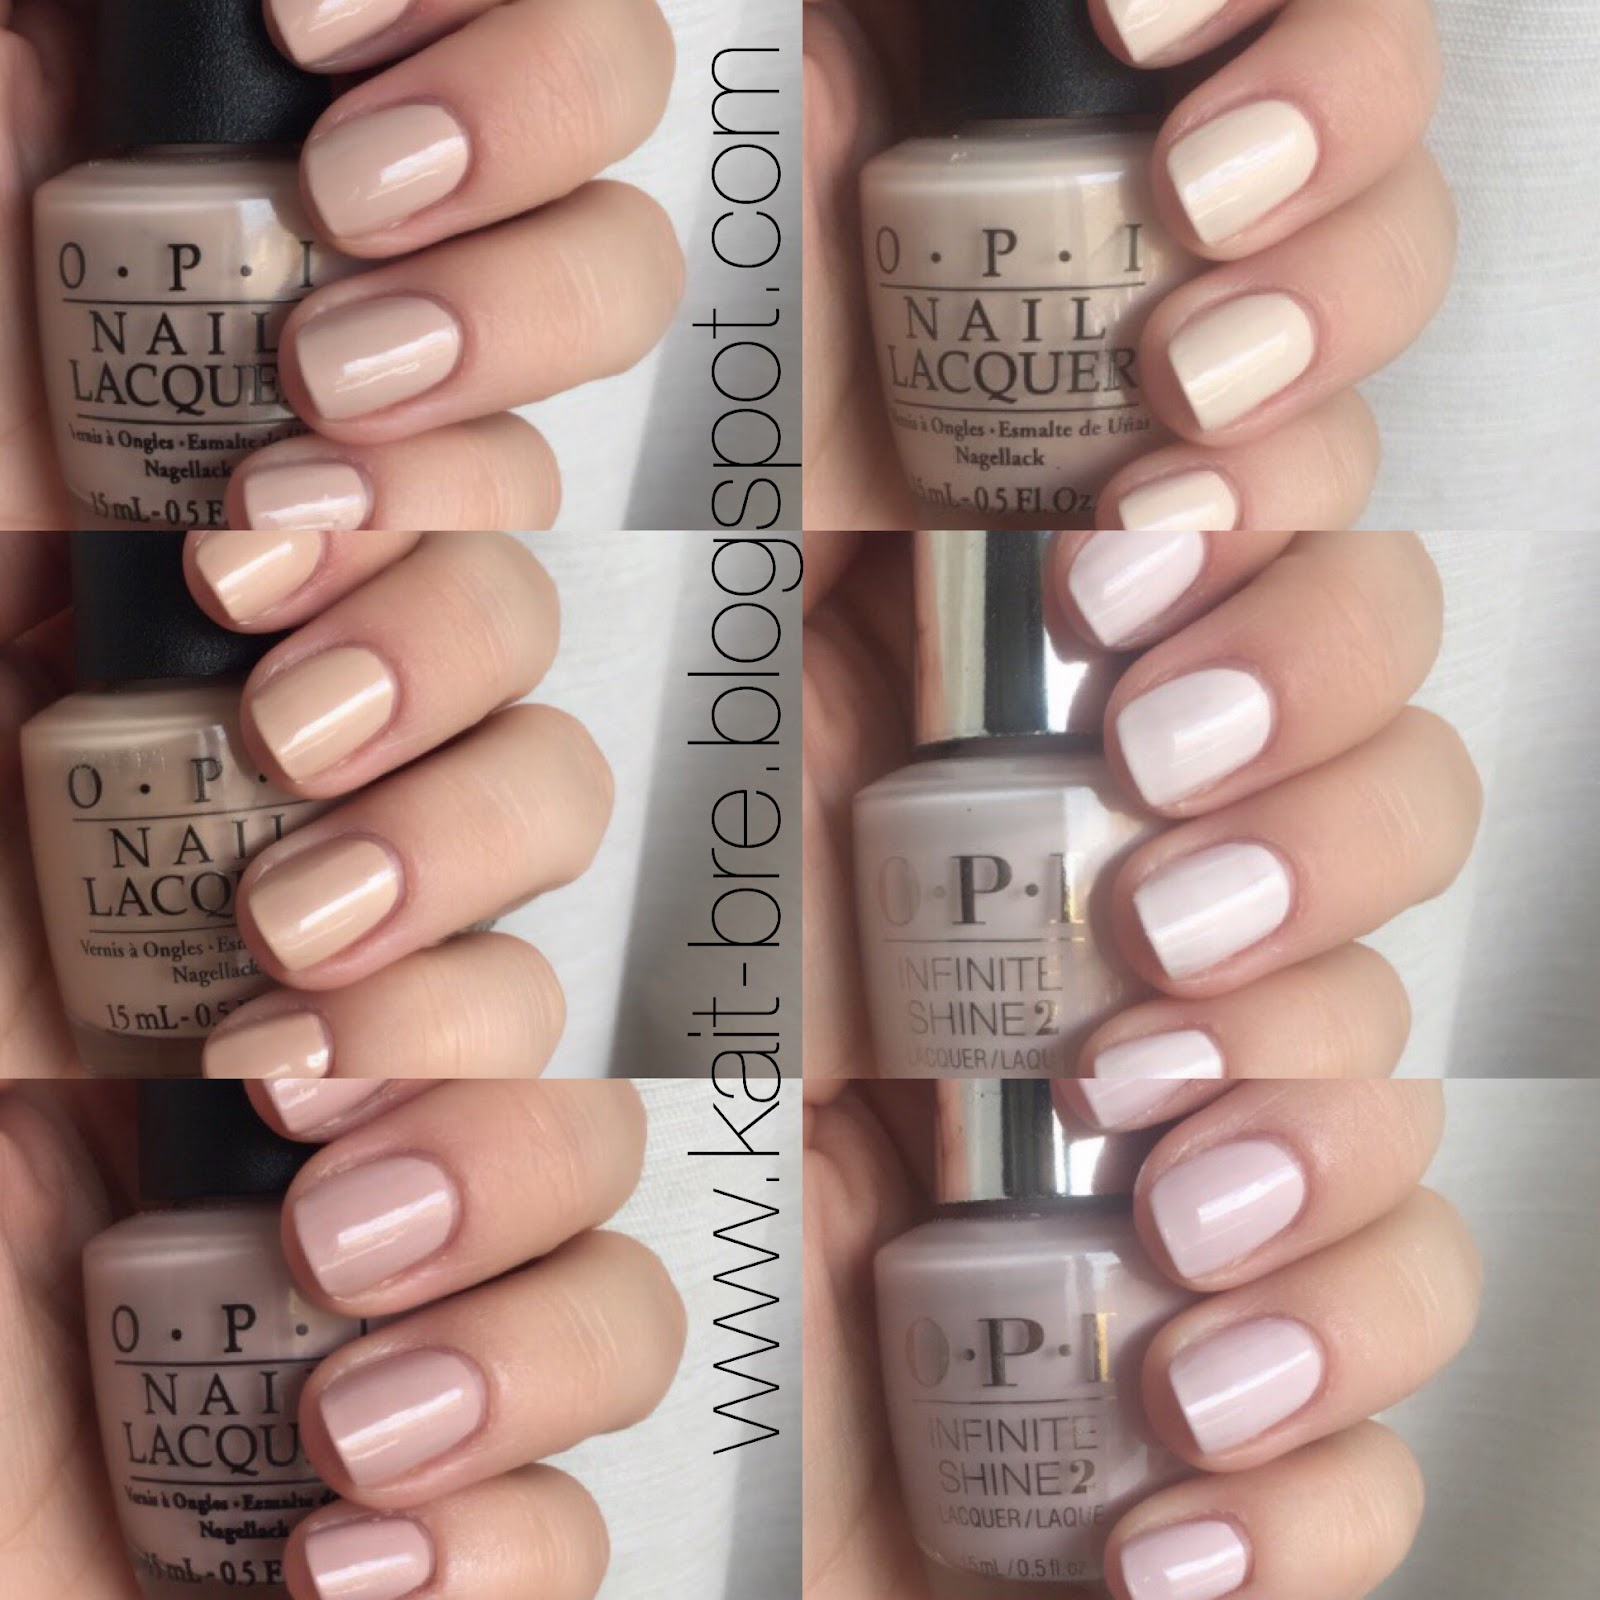 OPI Neutrals - Swatches & Reviews | Kait + Bre